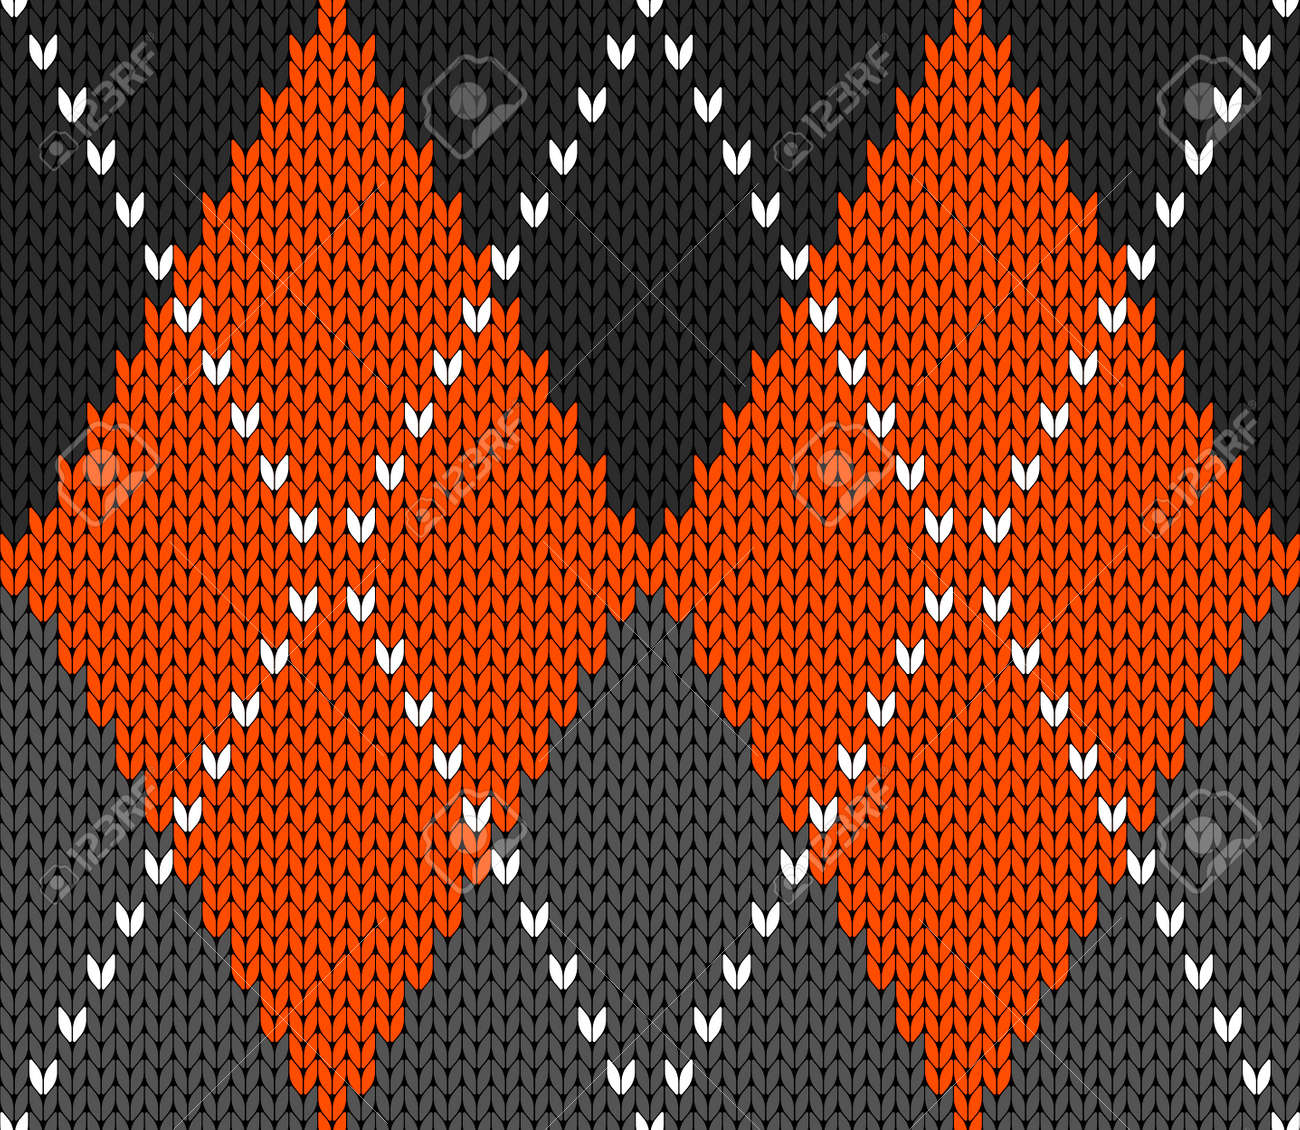 Knitted argyle Halloween pattern. Wool knitinng. Scottish plaid in orange, black and grey rhombuses. Traditional Scottish background of diamonds . Seamless fabric texture. Vector illustration - 158134425